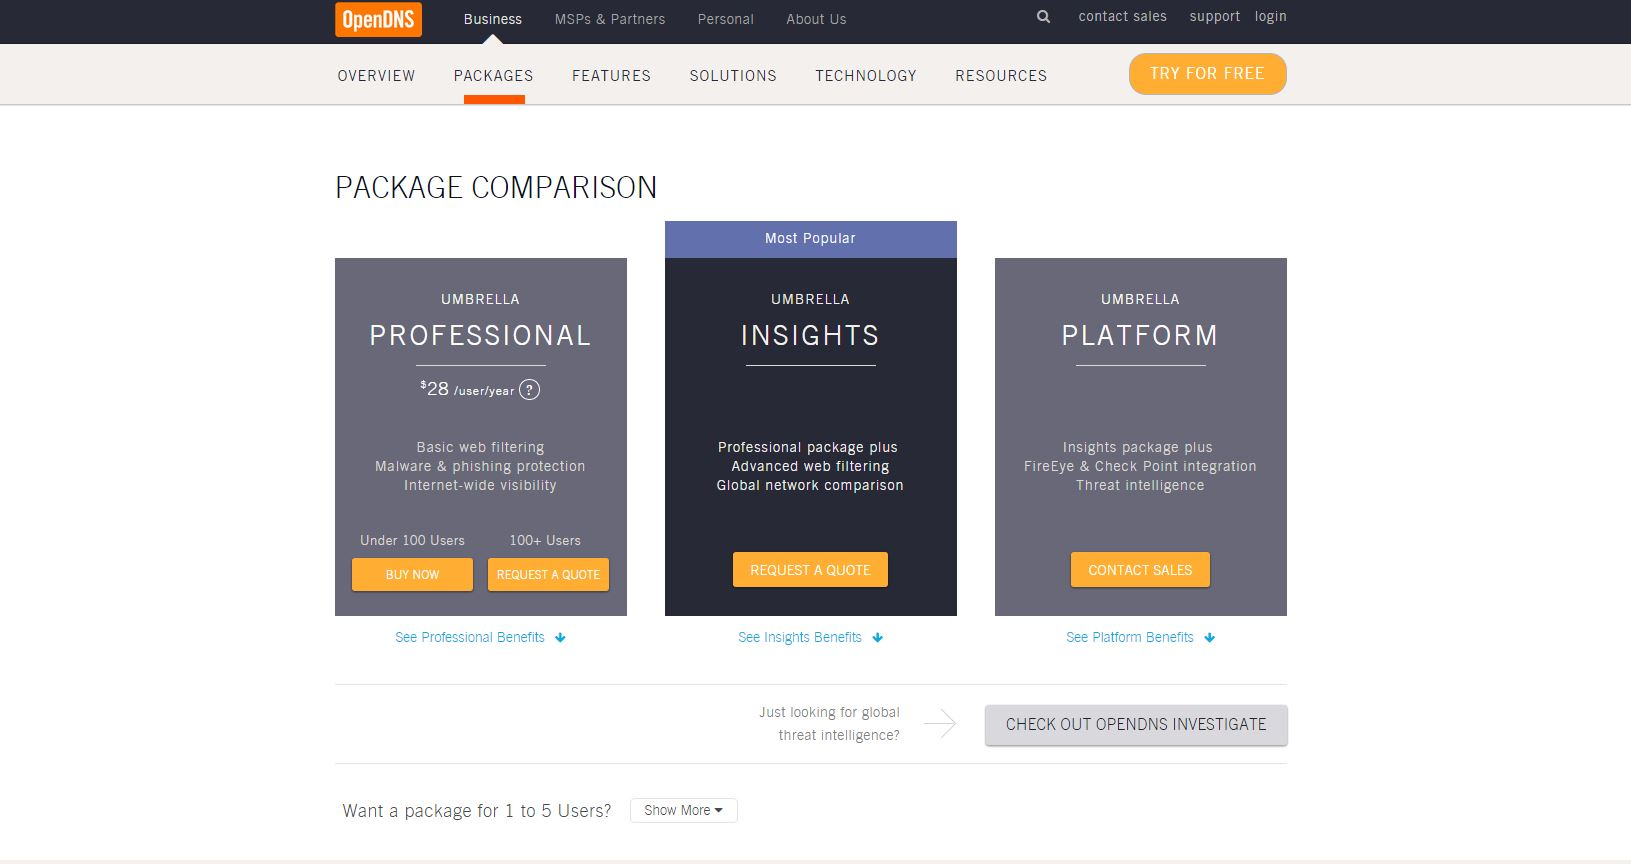 OpenDNS is Free for Home use and offers Business Grade security that is in budget.